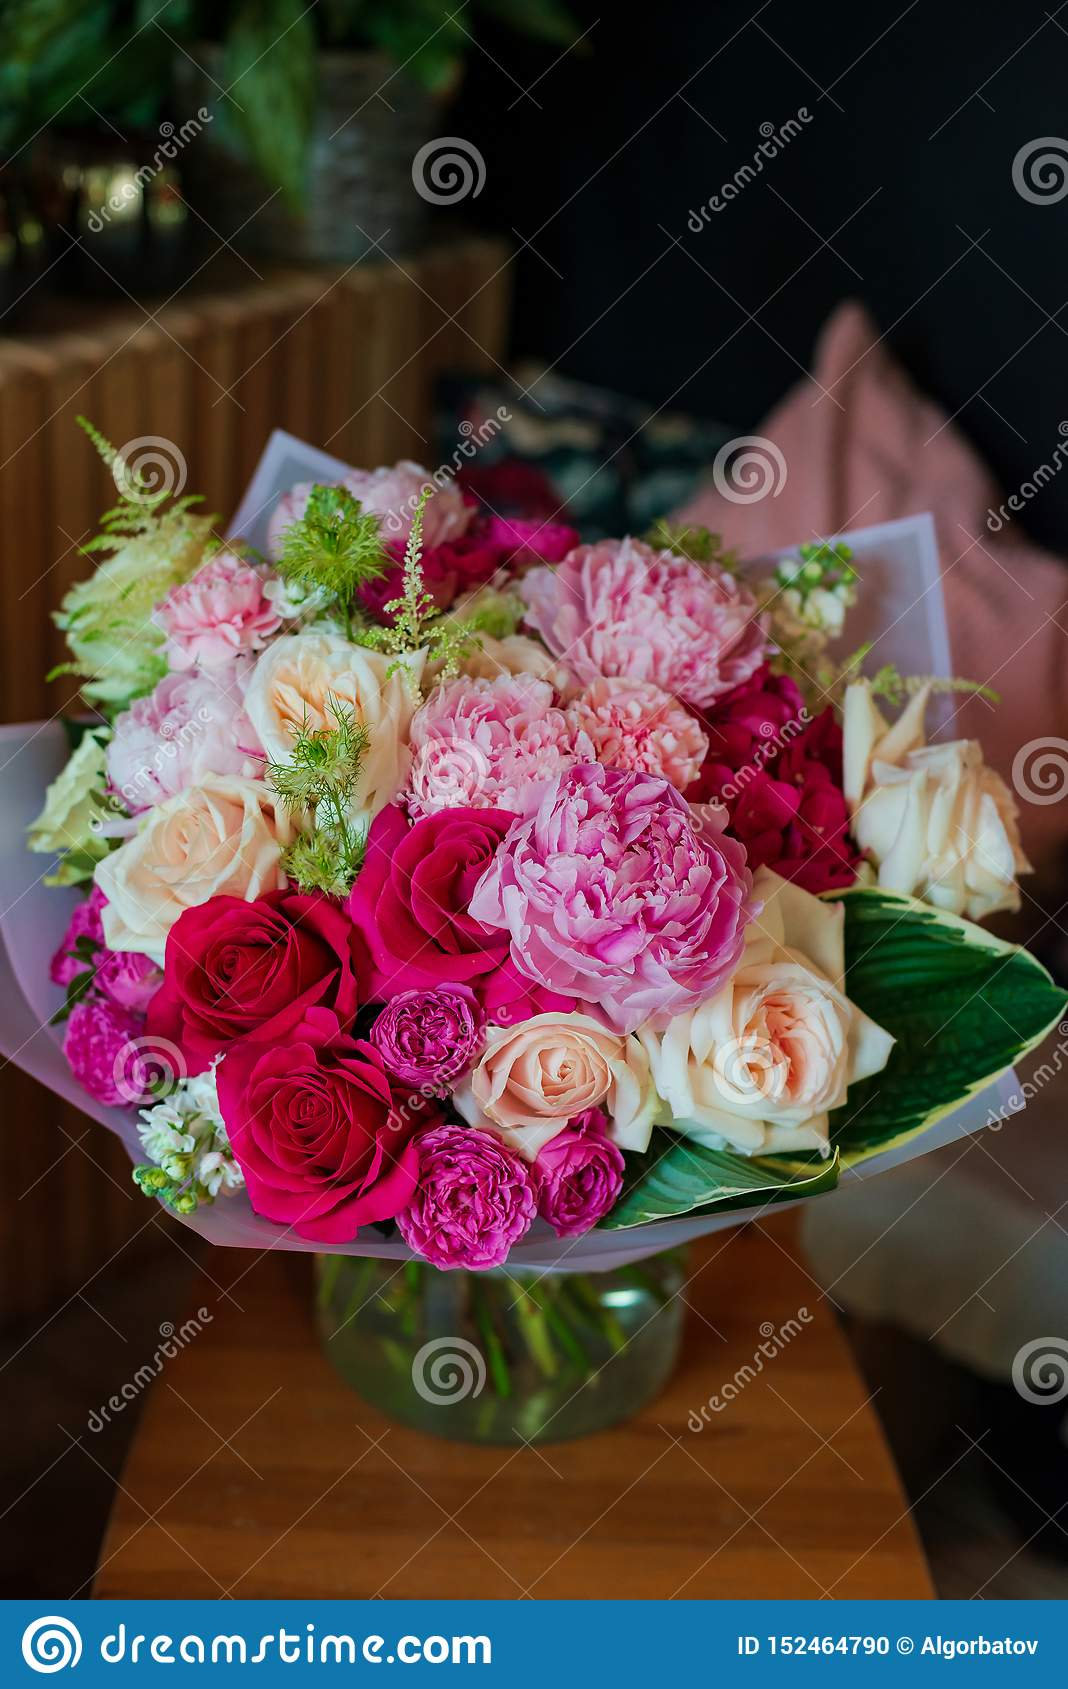 Bouquet Of Flowers From Anemone Rose Ranunculus Mattiola Tulip Eucalyptus Narcissus For A Wedding Or Holiday Stock Photo Image Of Color Gift 152464790